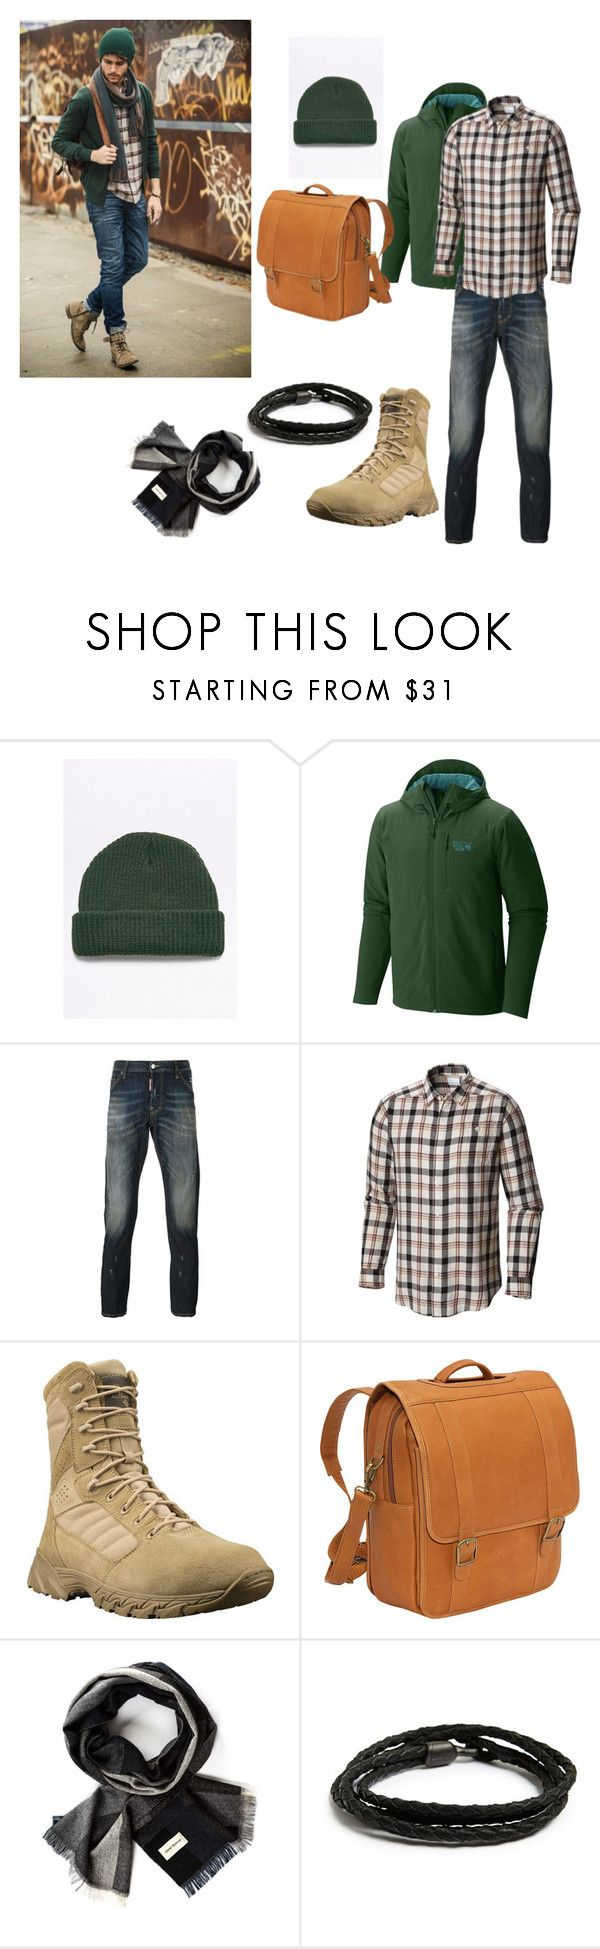 """""""Untitled #28"""" by sano15 ❤ liked on Polyvore featuring Urban Outfitters, Mountain Hardwear, Dsquared2, Columbia, Le Donne, Oliver Spencer, MIANSAI, men's fashion and menswear"""